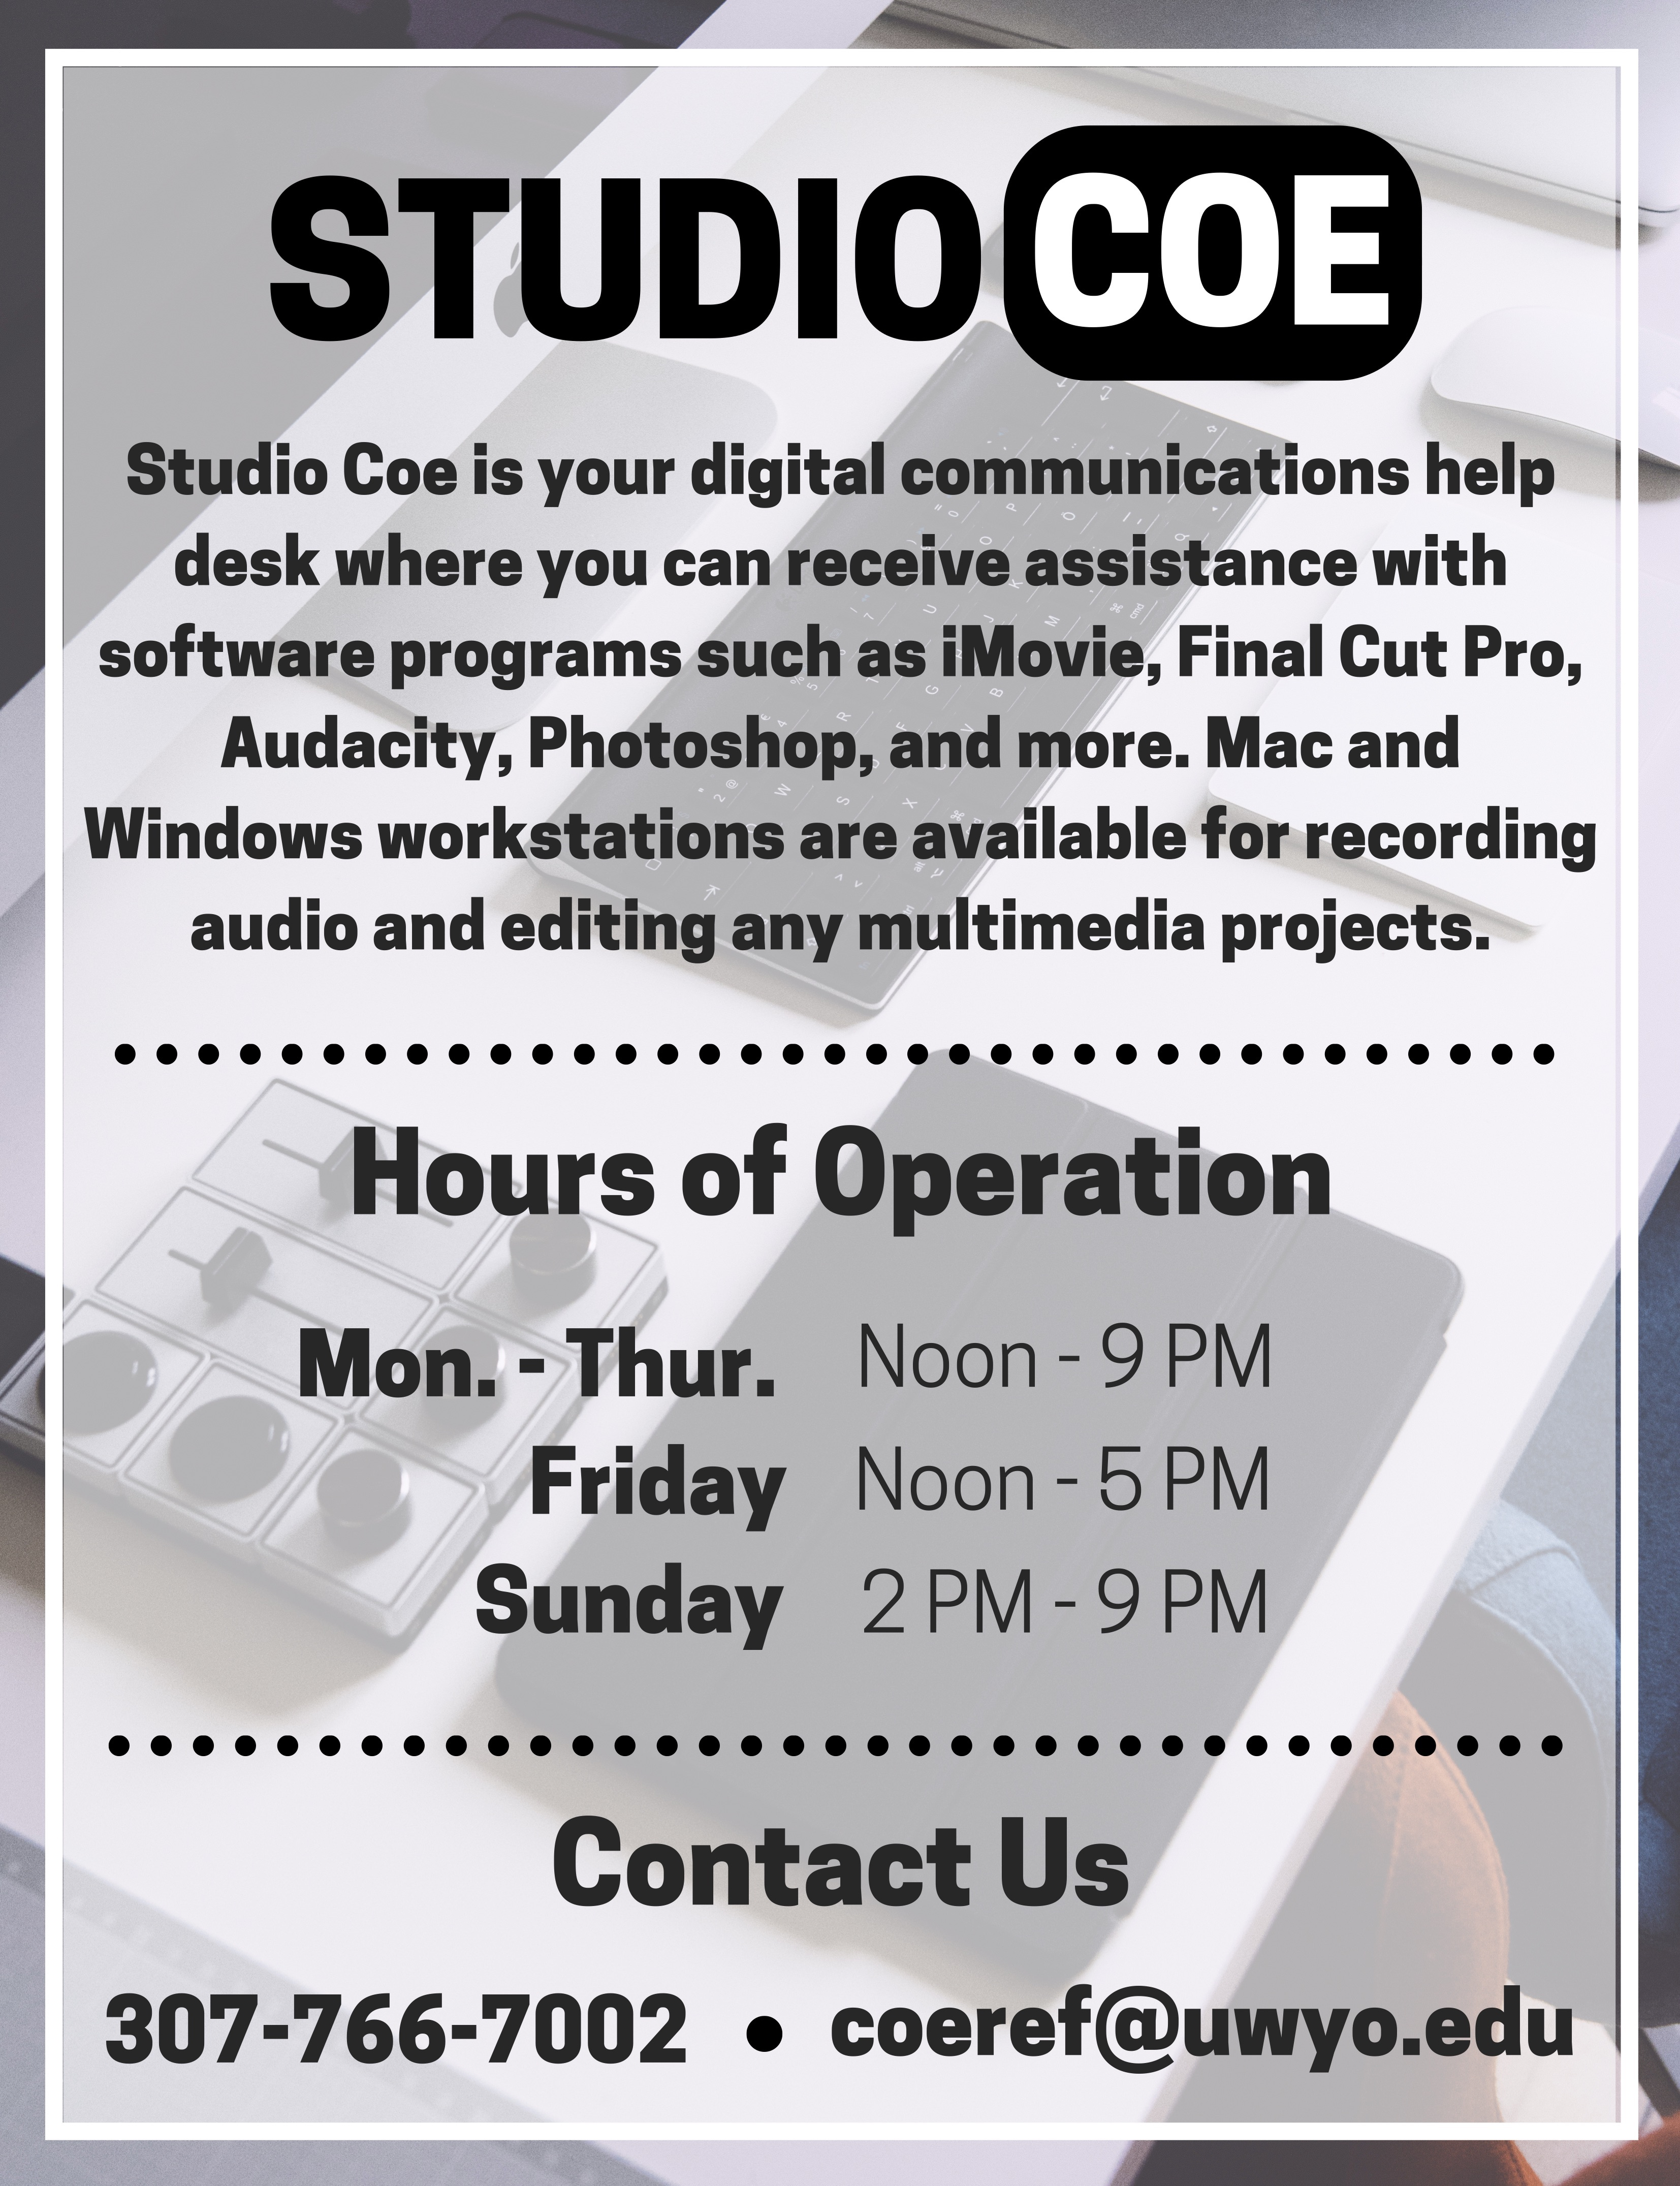 Studio Coe. Studio Coe is your digital communications help desk where you can receive assistance with software programs such as iMovie, Final Cut Pro, Audacity, Photoshop, and more. Mac and Windows Workstations are available for recording audio and editing any multimedia projects. Hours of Operation. We are open Monday to Thursday from 12 PM to 9 PM, Friday from noon to 5 PM, and Sunday from 2 PM to 9 PM. Contact us. Our phone number is 307-766-7002. Our email is coeref@uwyo.edu.